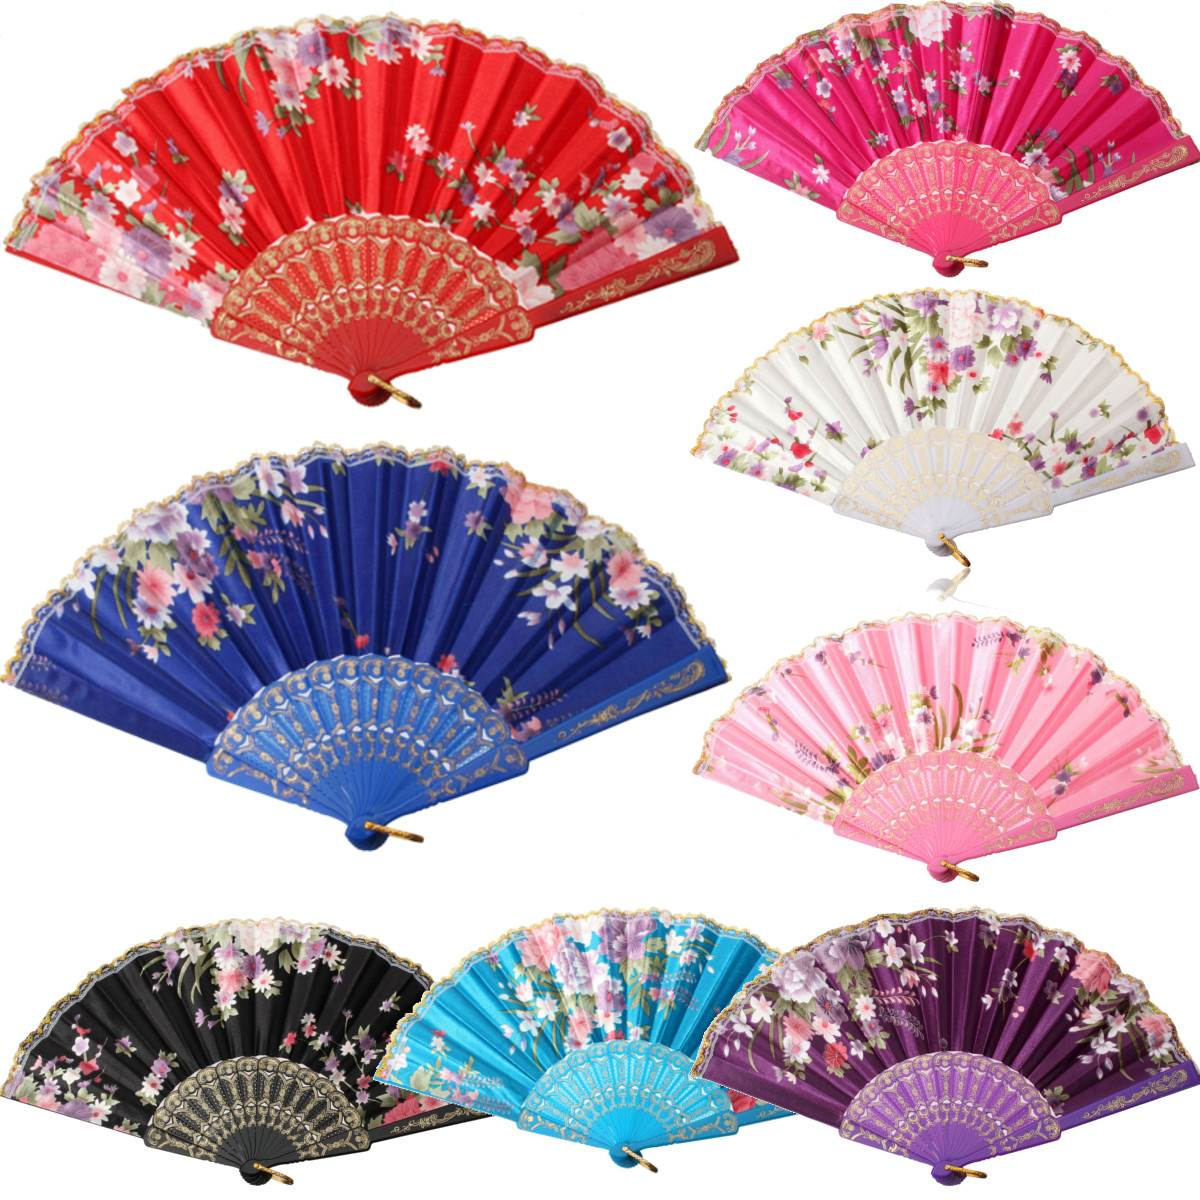 New Chinese Japanese Vintage Fancy Folding Fan Hand Plastic Lace Silk Flower Dance Fans Party Supplies For Gift Free Shipping(China (Mainland))